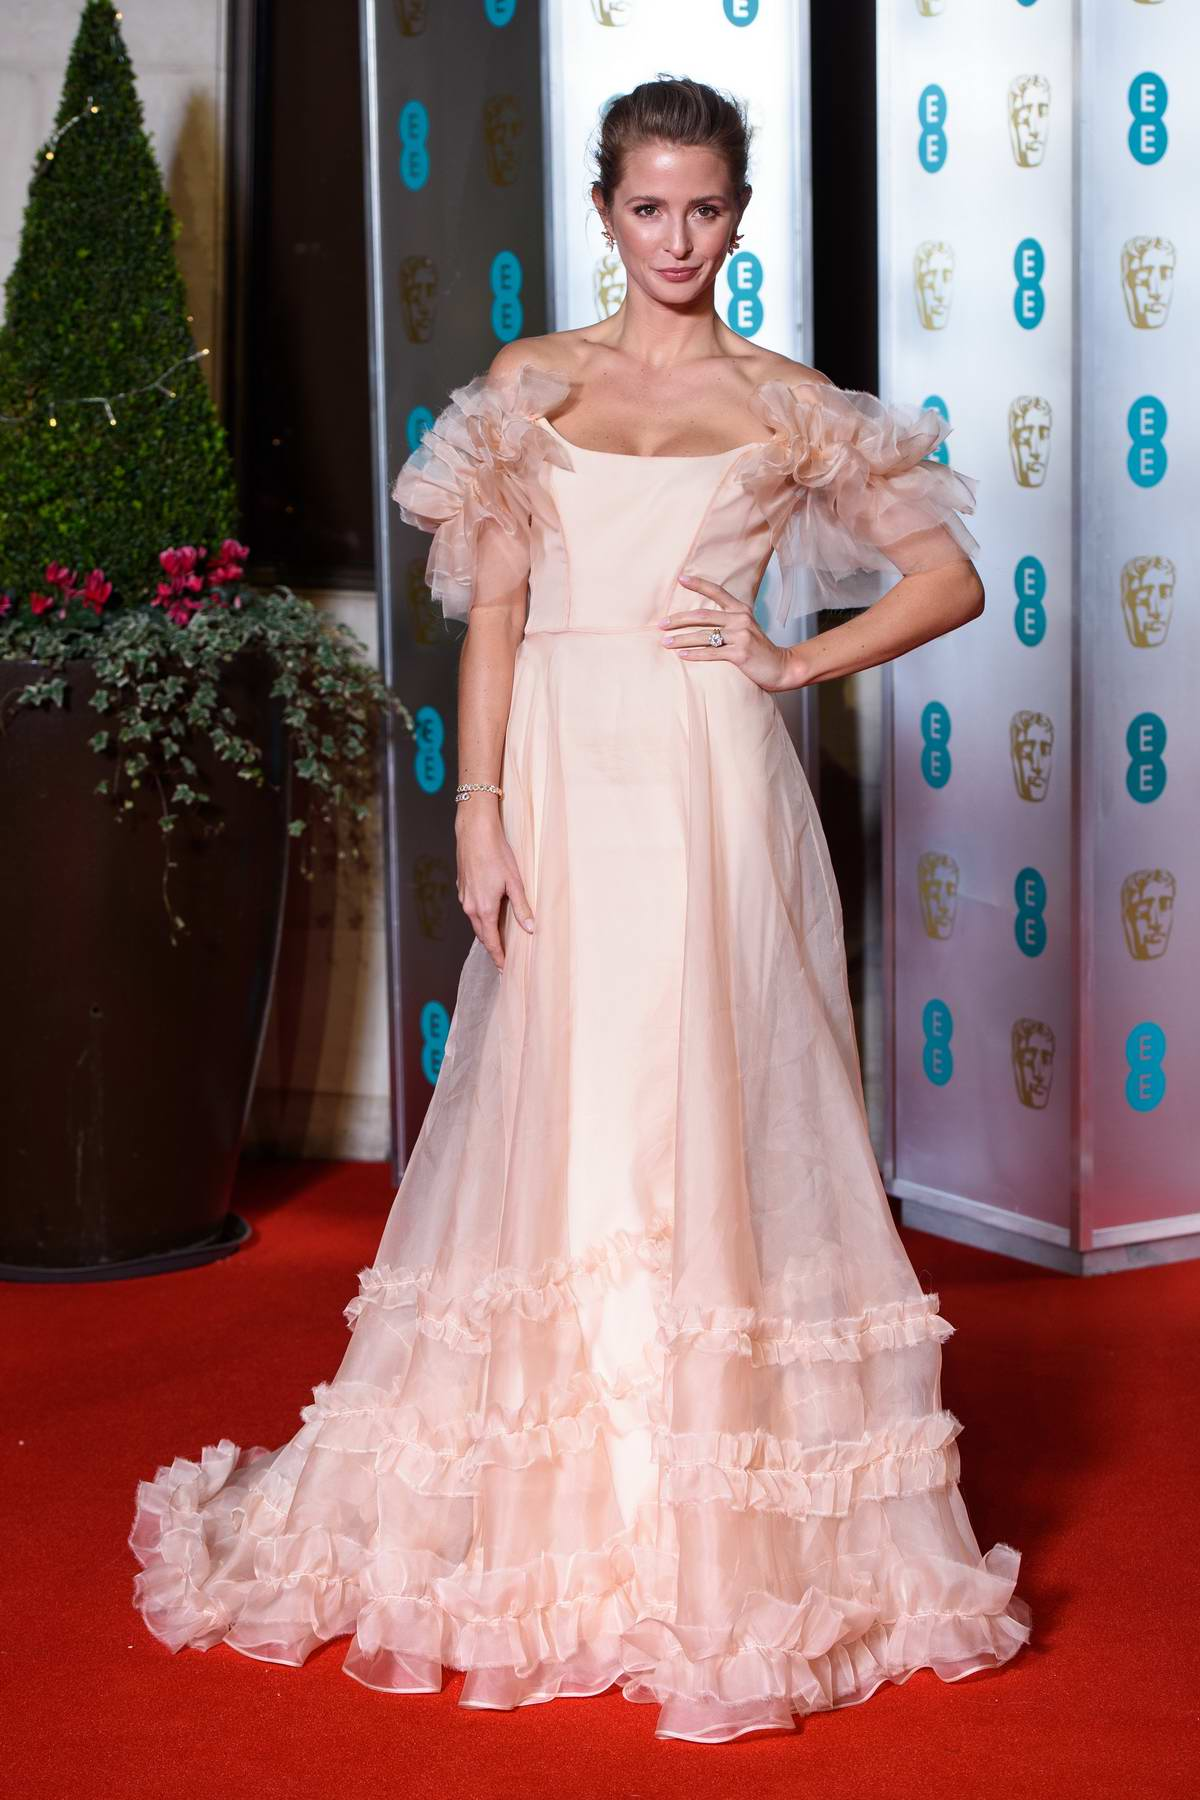 Millie Mackintosh attends the 72nd EE British Academy Film Awards (BAFTA 2019) at Royal Albert Hall in London, UK